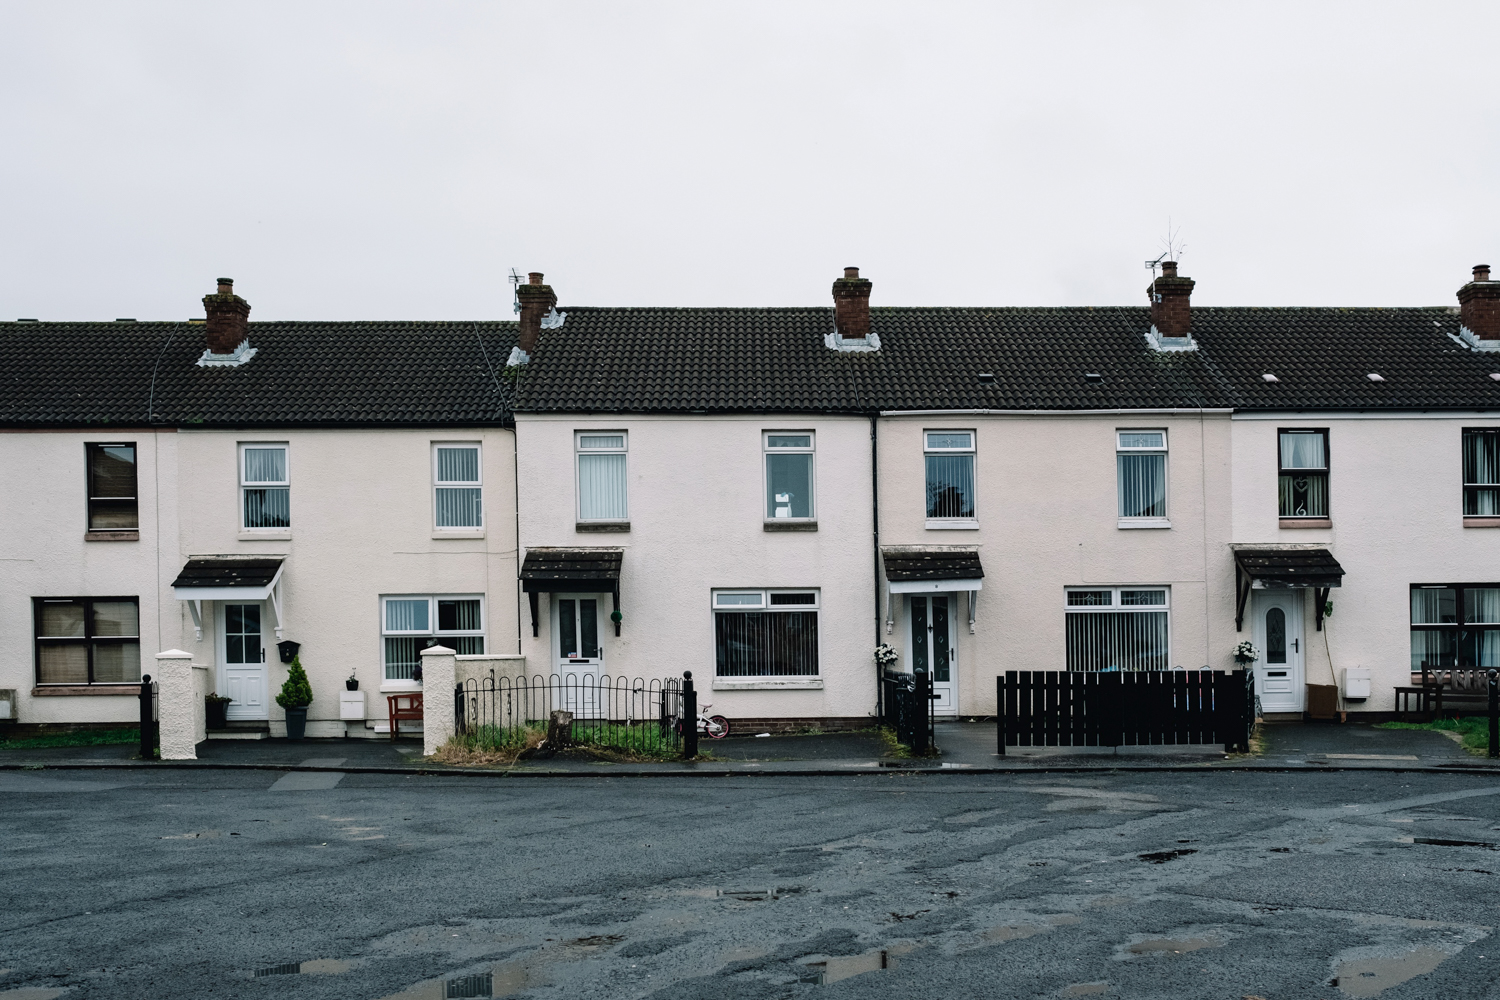 A row of semi-detatched houses in a Northern Irish street.